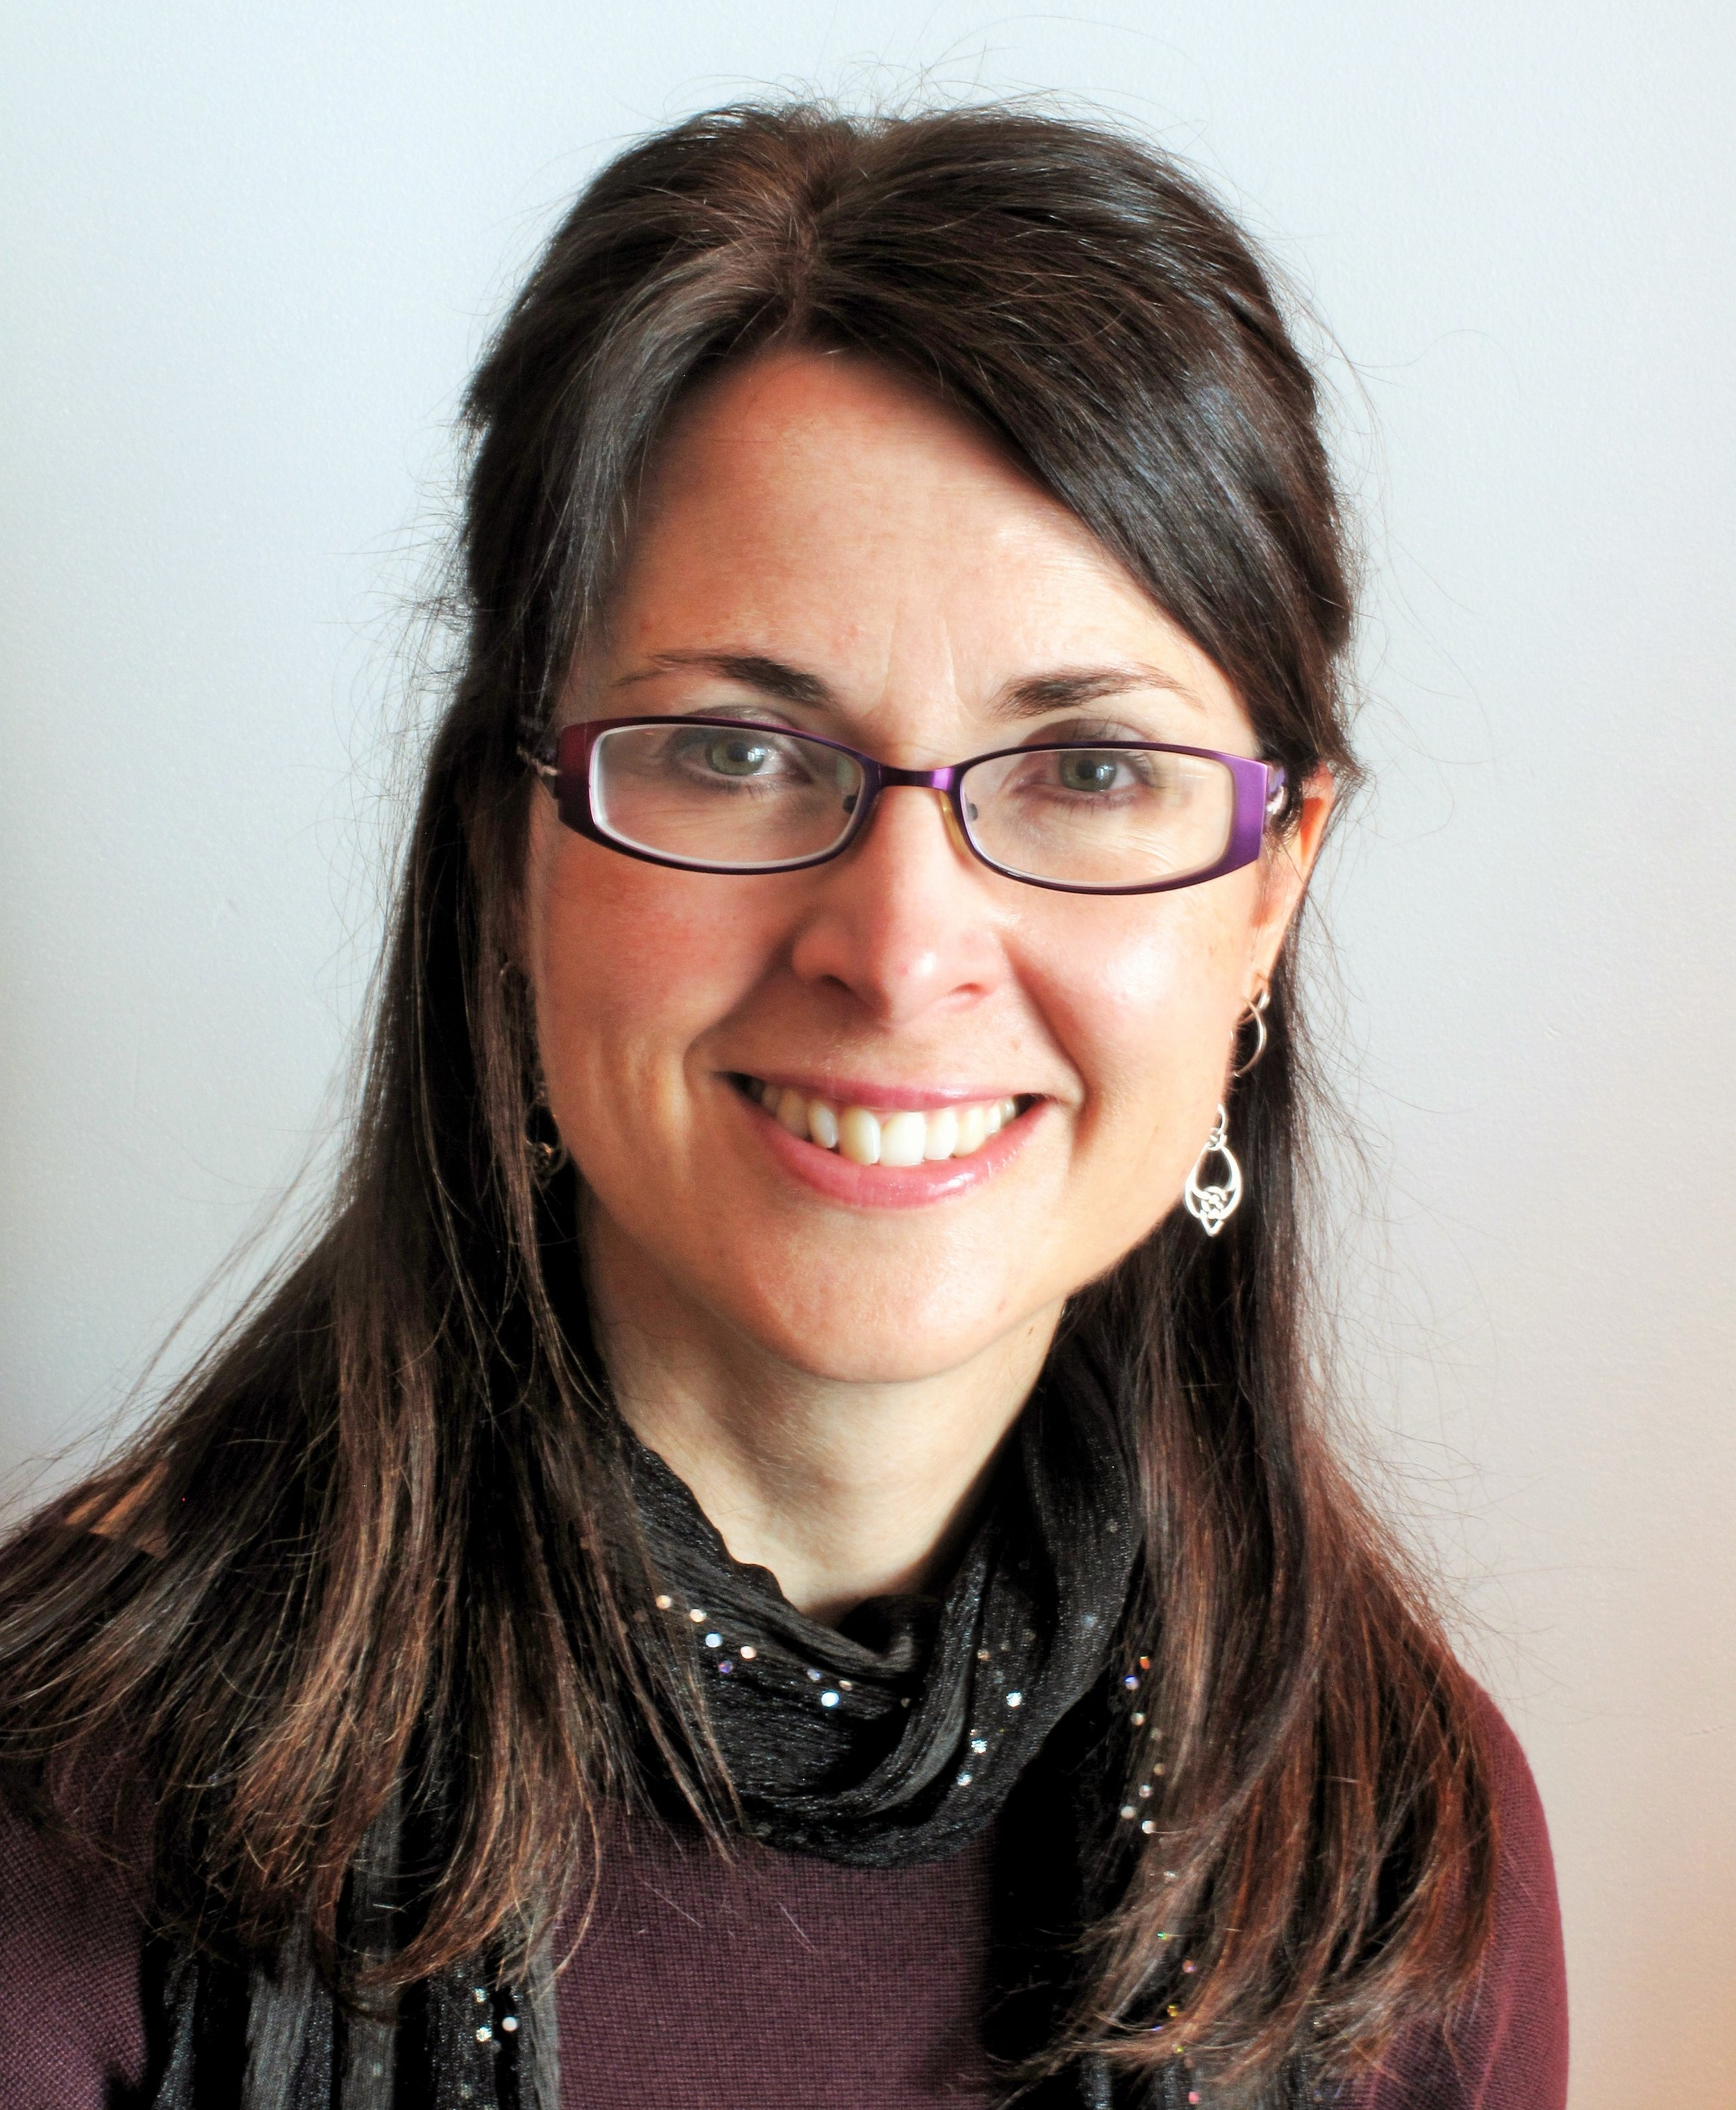 Marci Copes-Genereux Clinical Social Worker MCG Counselling  www.mcgcounselling.com  Grande Prairie, AB 780-933-2494